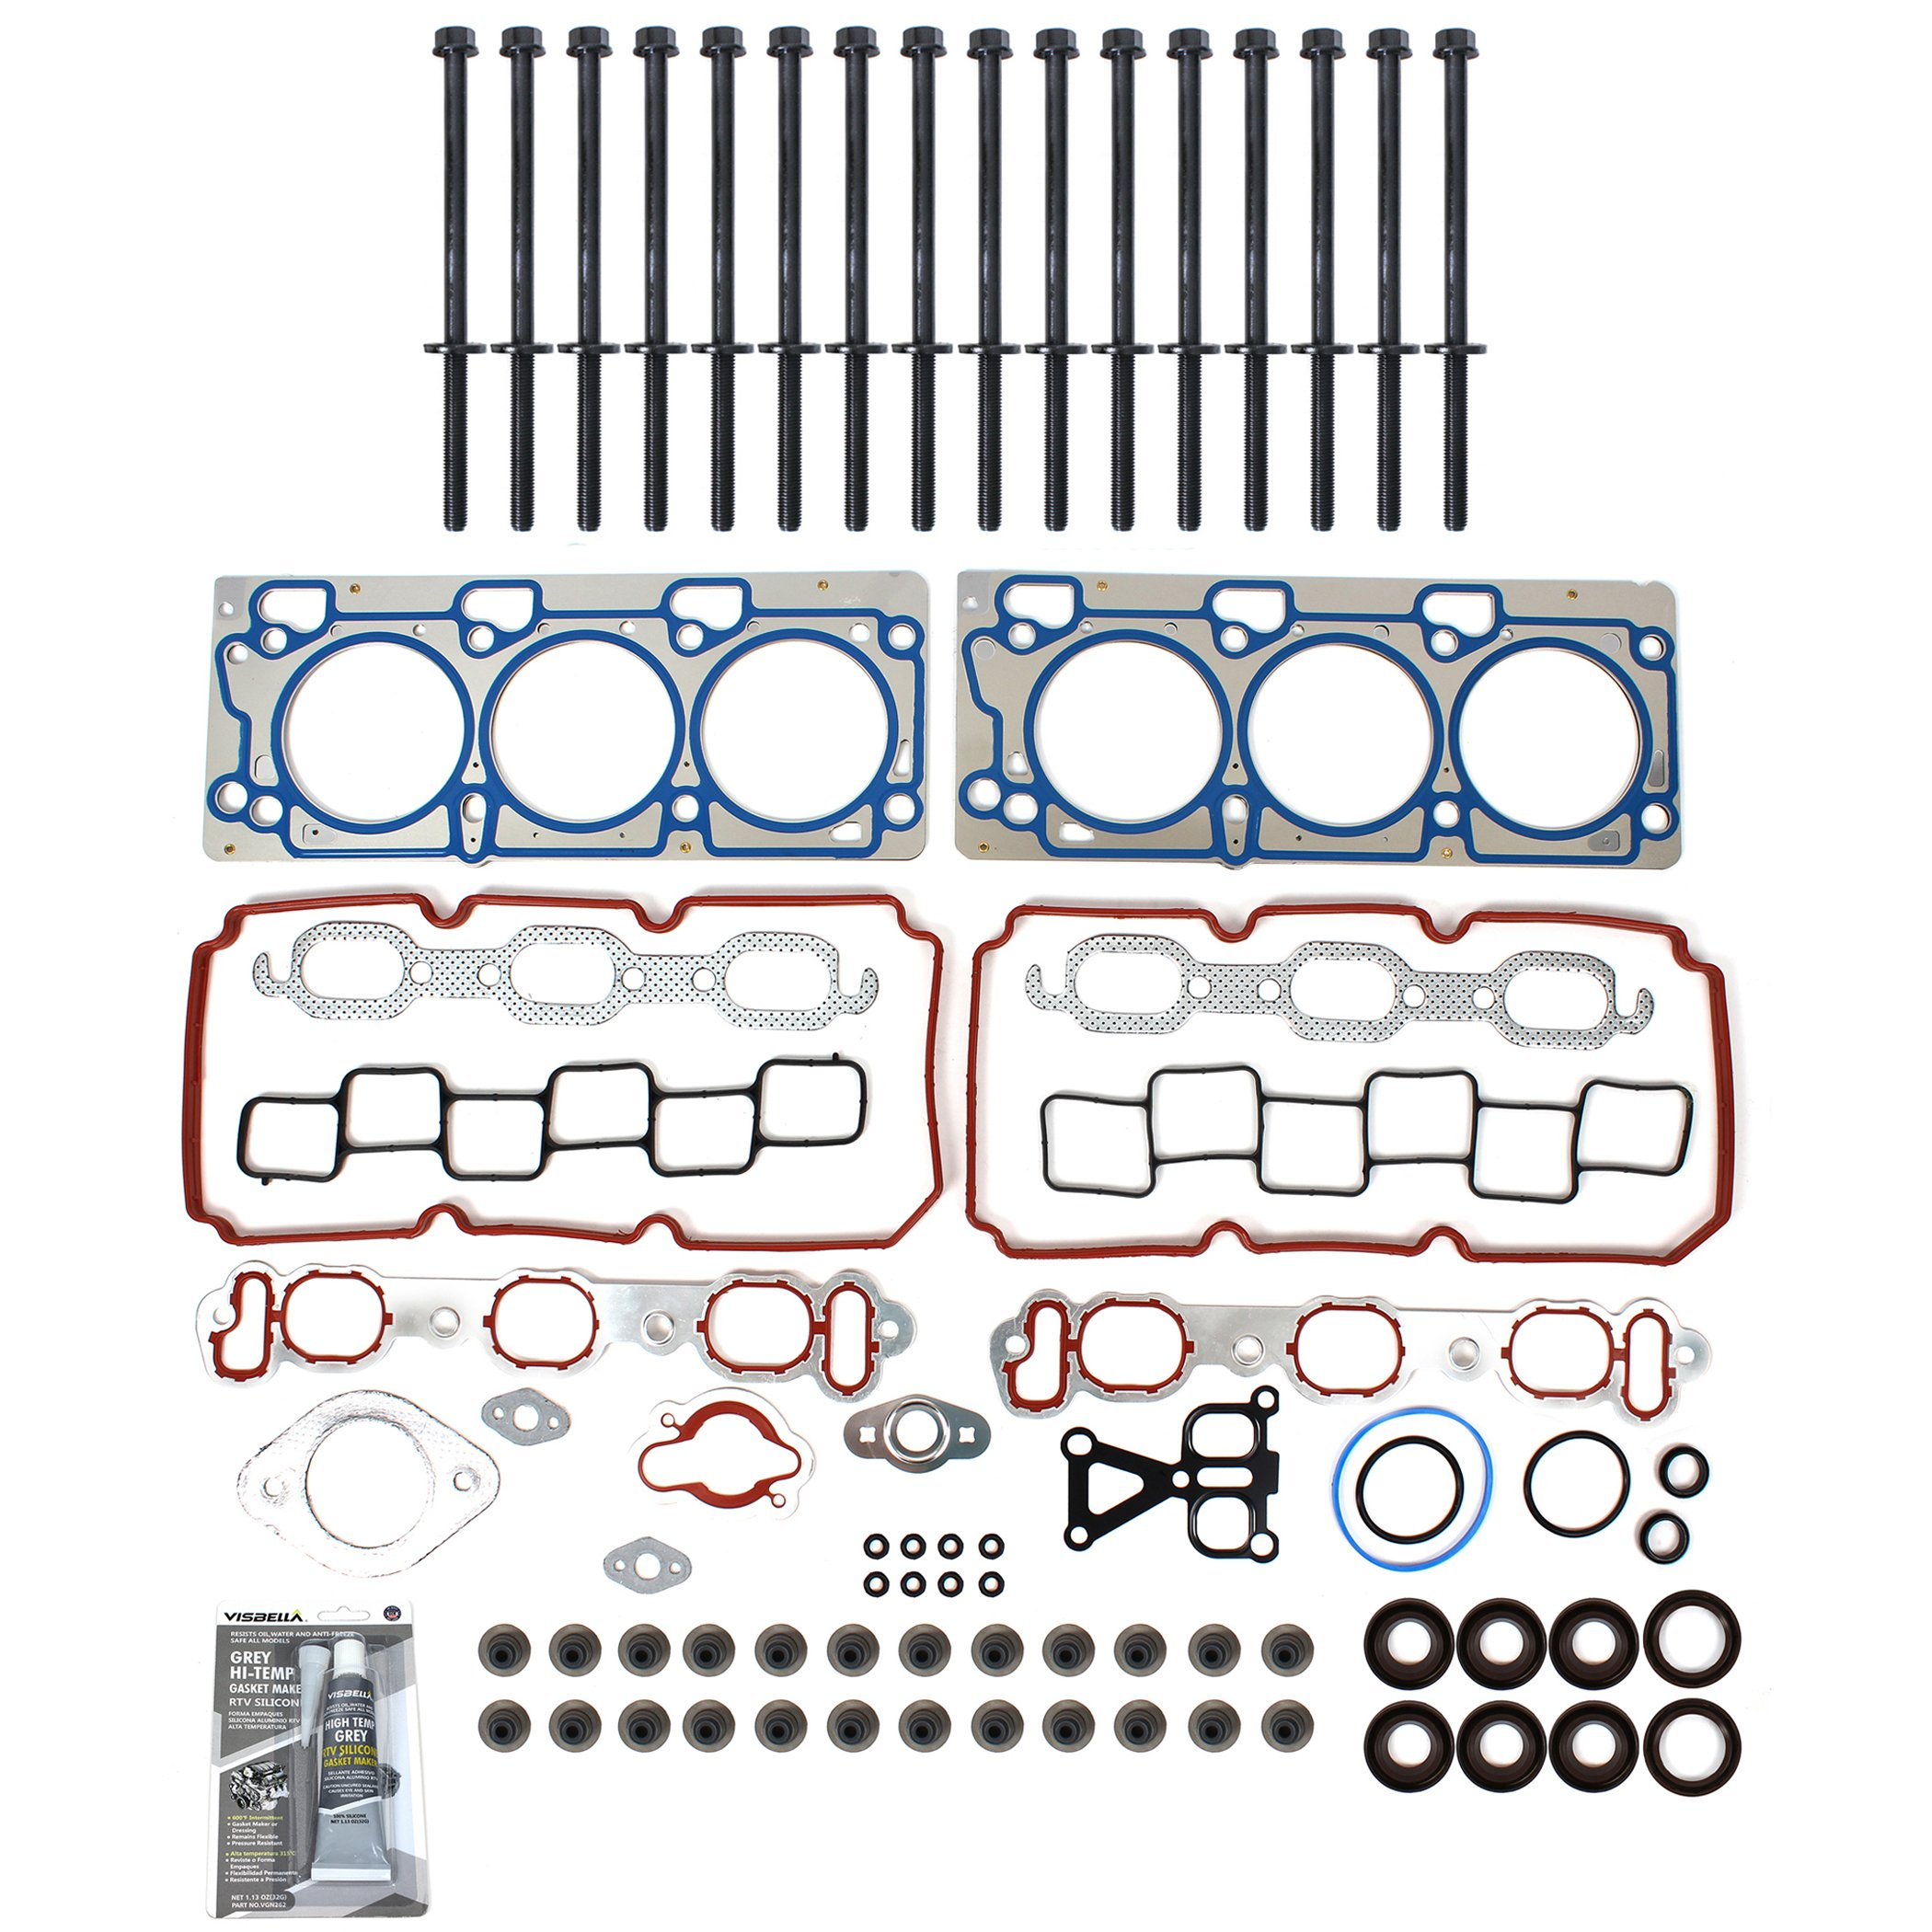 TS2620802HB Brand New MLS Cylinder Head Gasket Set and Head Bolt Kit by CNS EngineParts